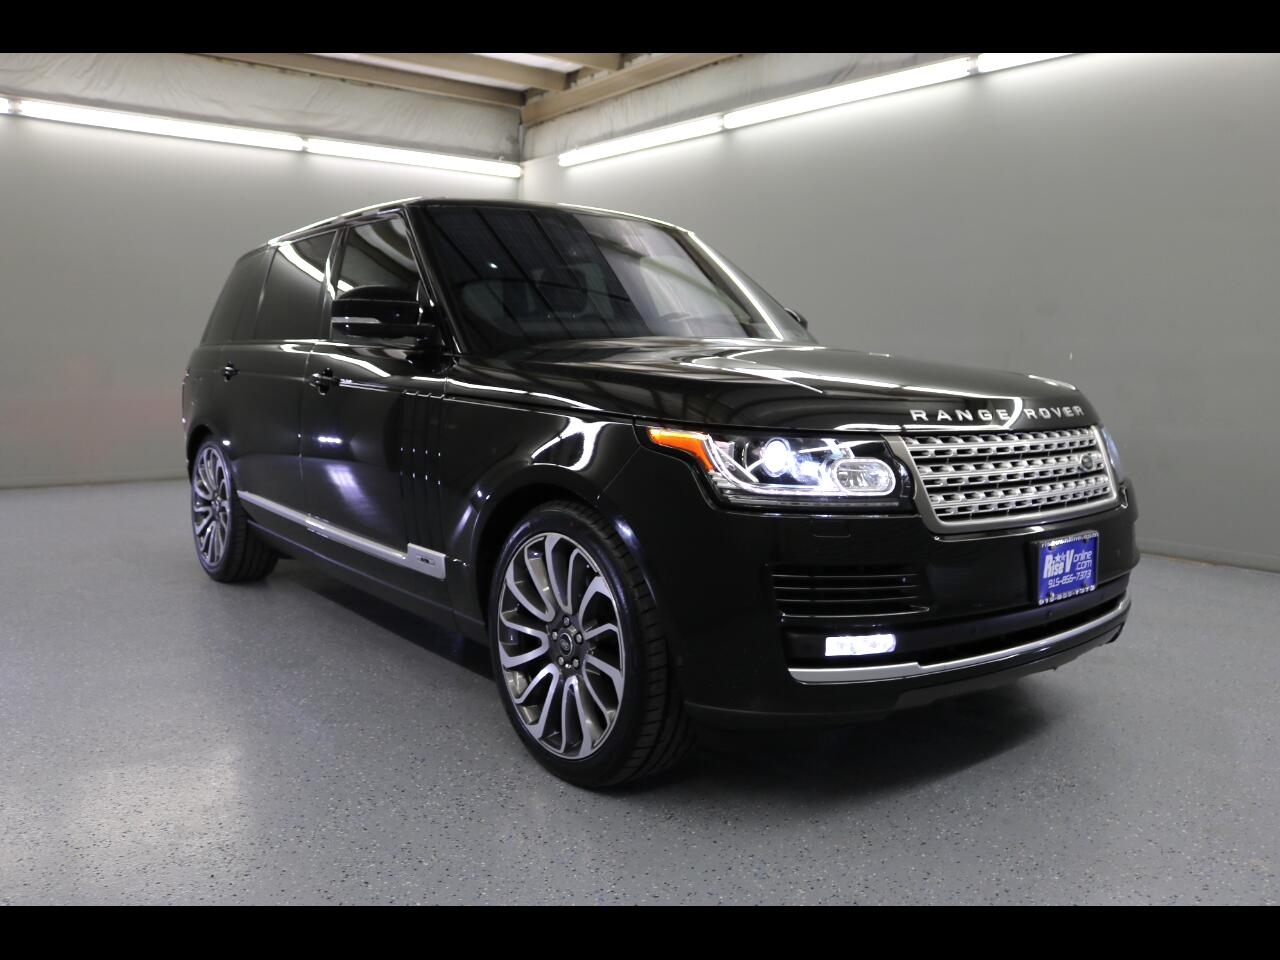 2016 Land Rover Range Rover 4WD 4dr Supercharged LWB